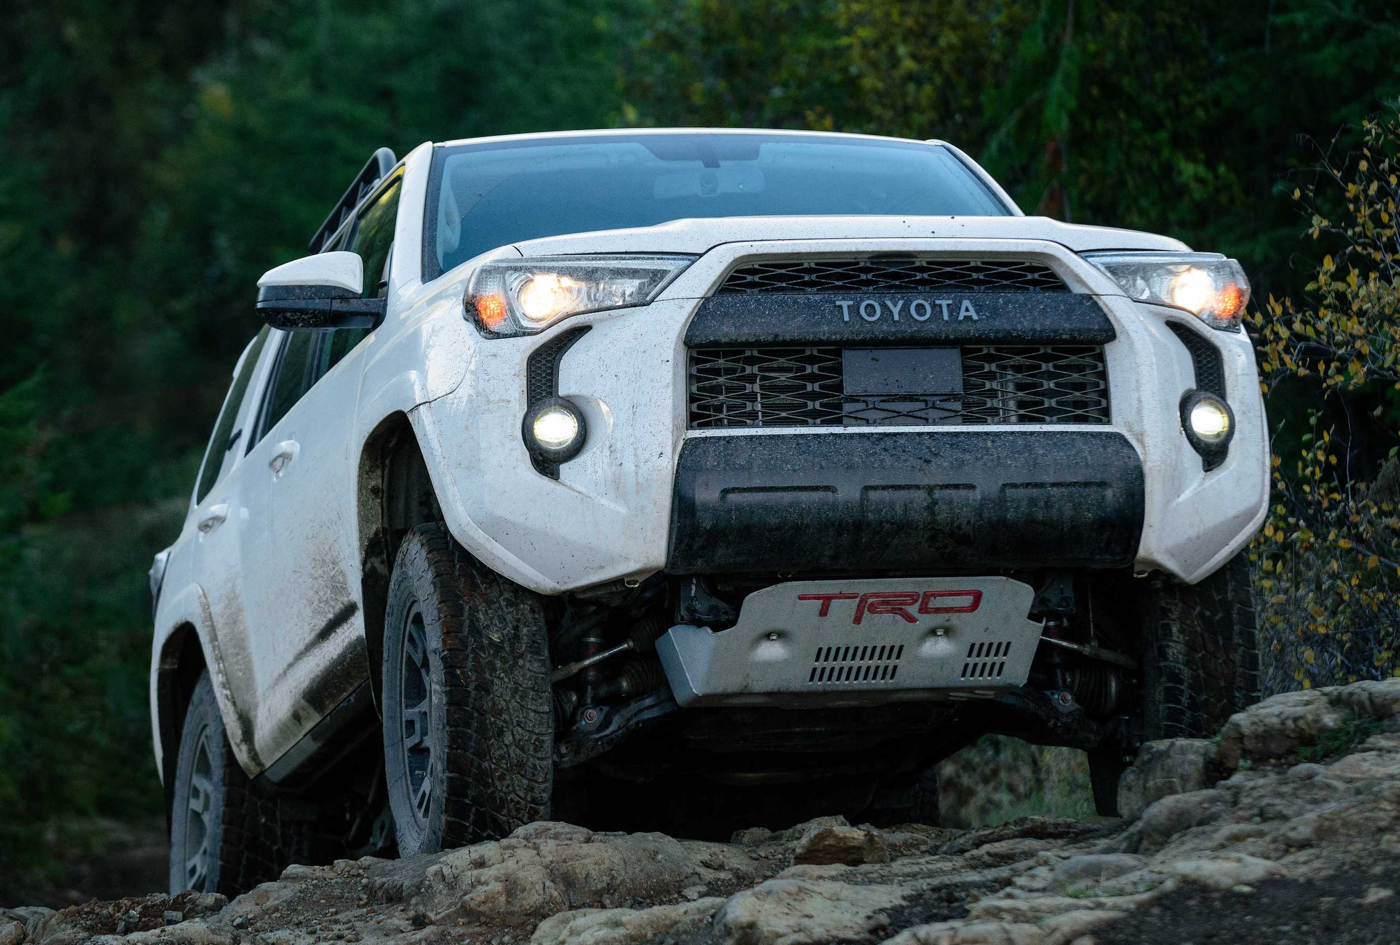 http://thecarchat.net/admin/carchat_admin/app/web/img/uploaded/2020 Toyota 4Runner TRD Pro